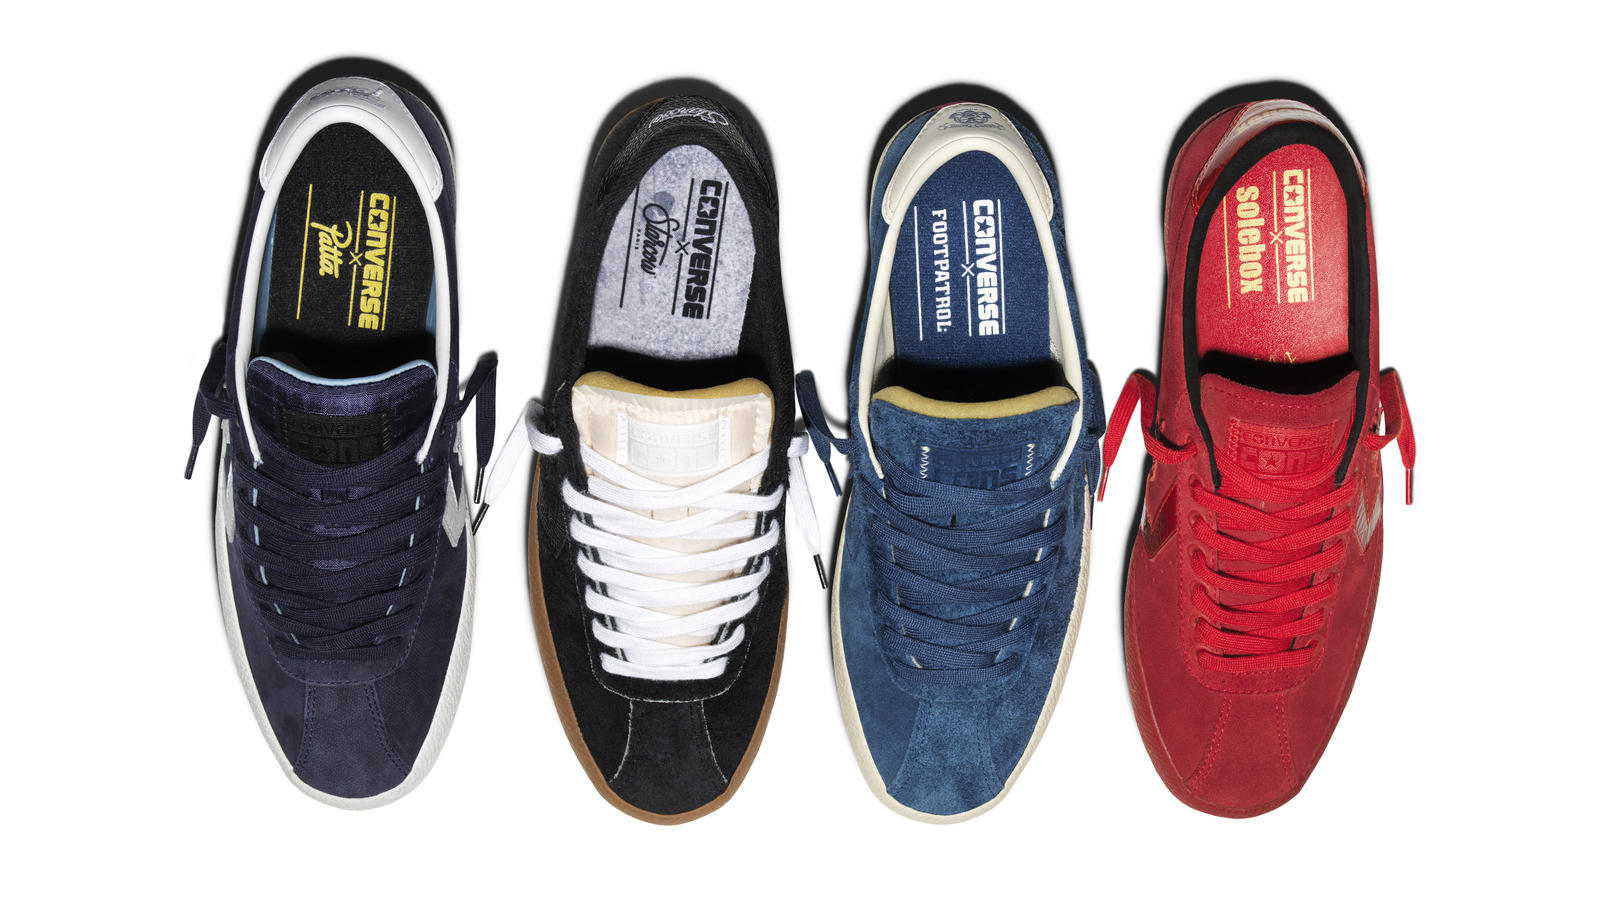 Converse CONS Launches Breakpoint Collection With European Retailers ... 214b6eaf092c